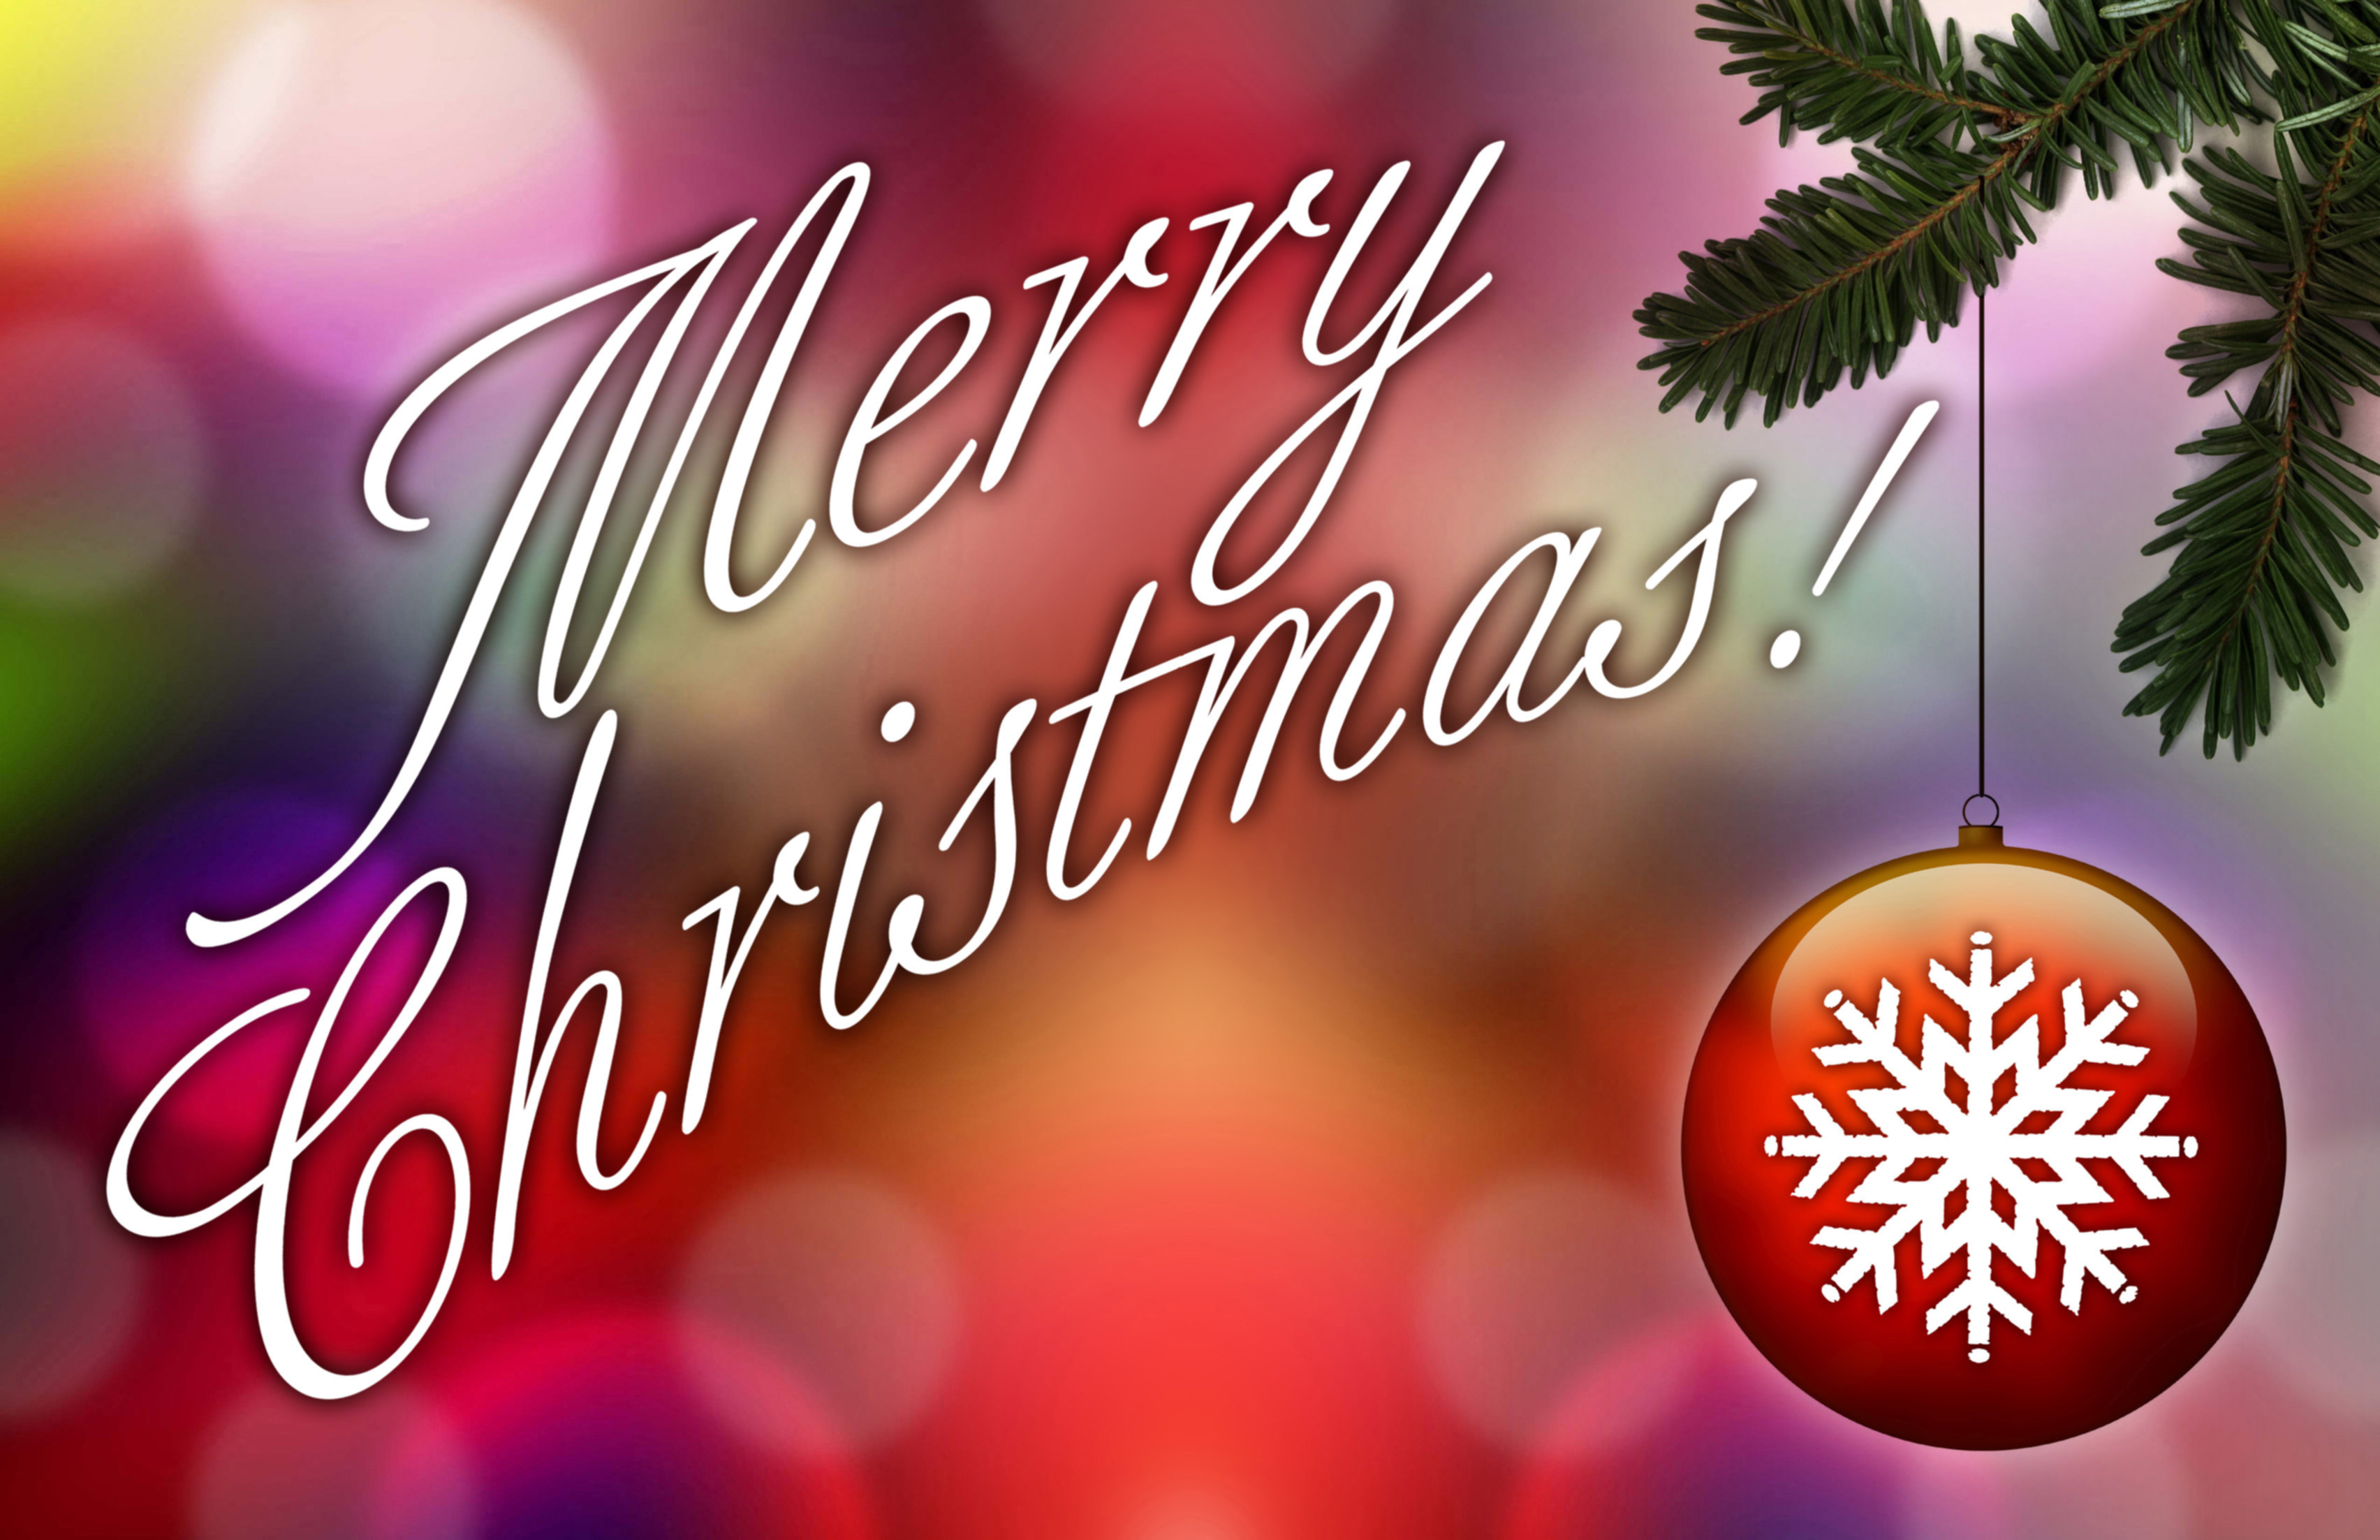 Muslims And Merry Christmas Wishes Discover Islam Kuwait Portal